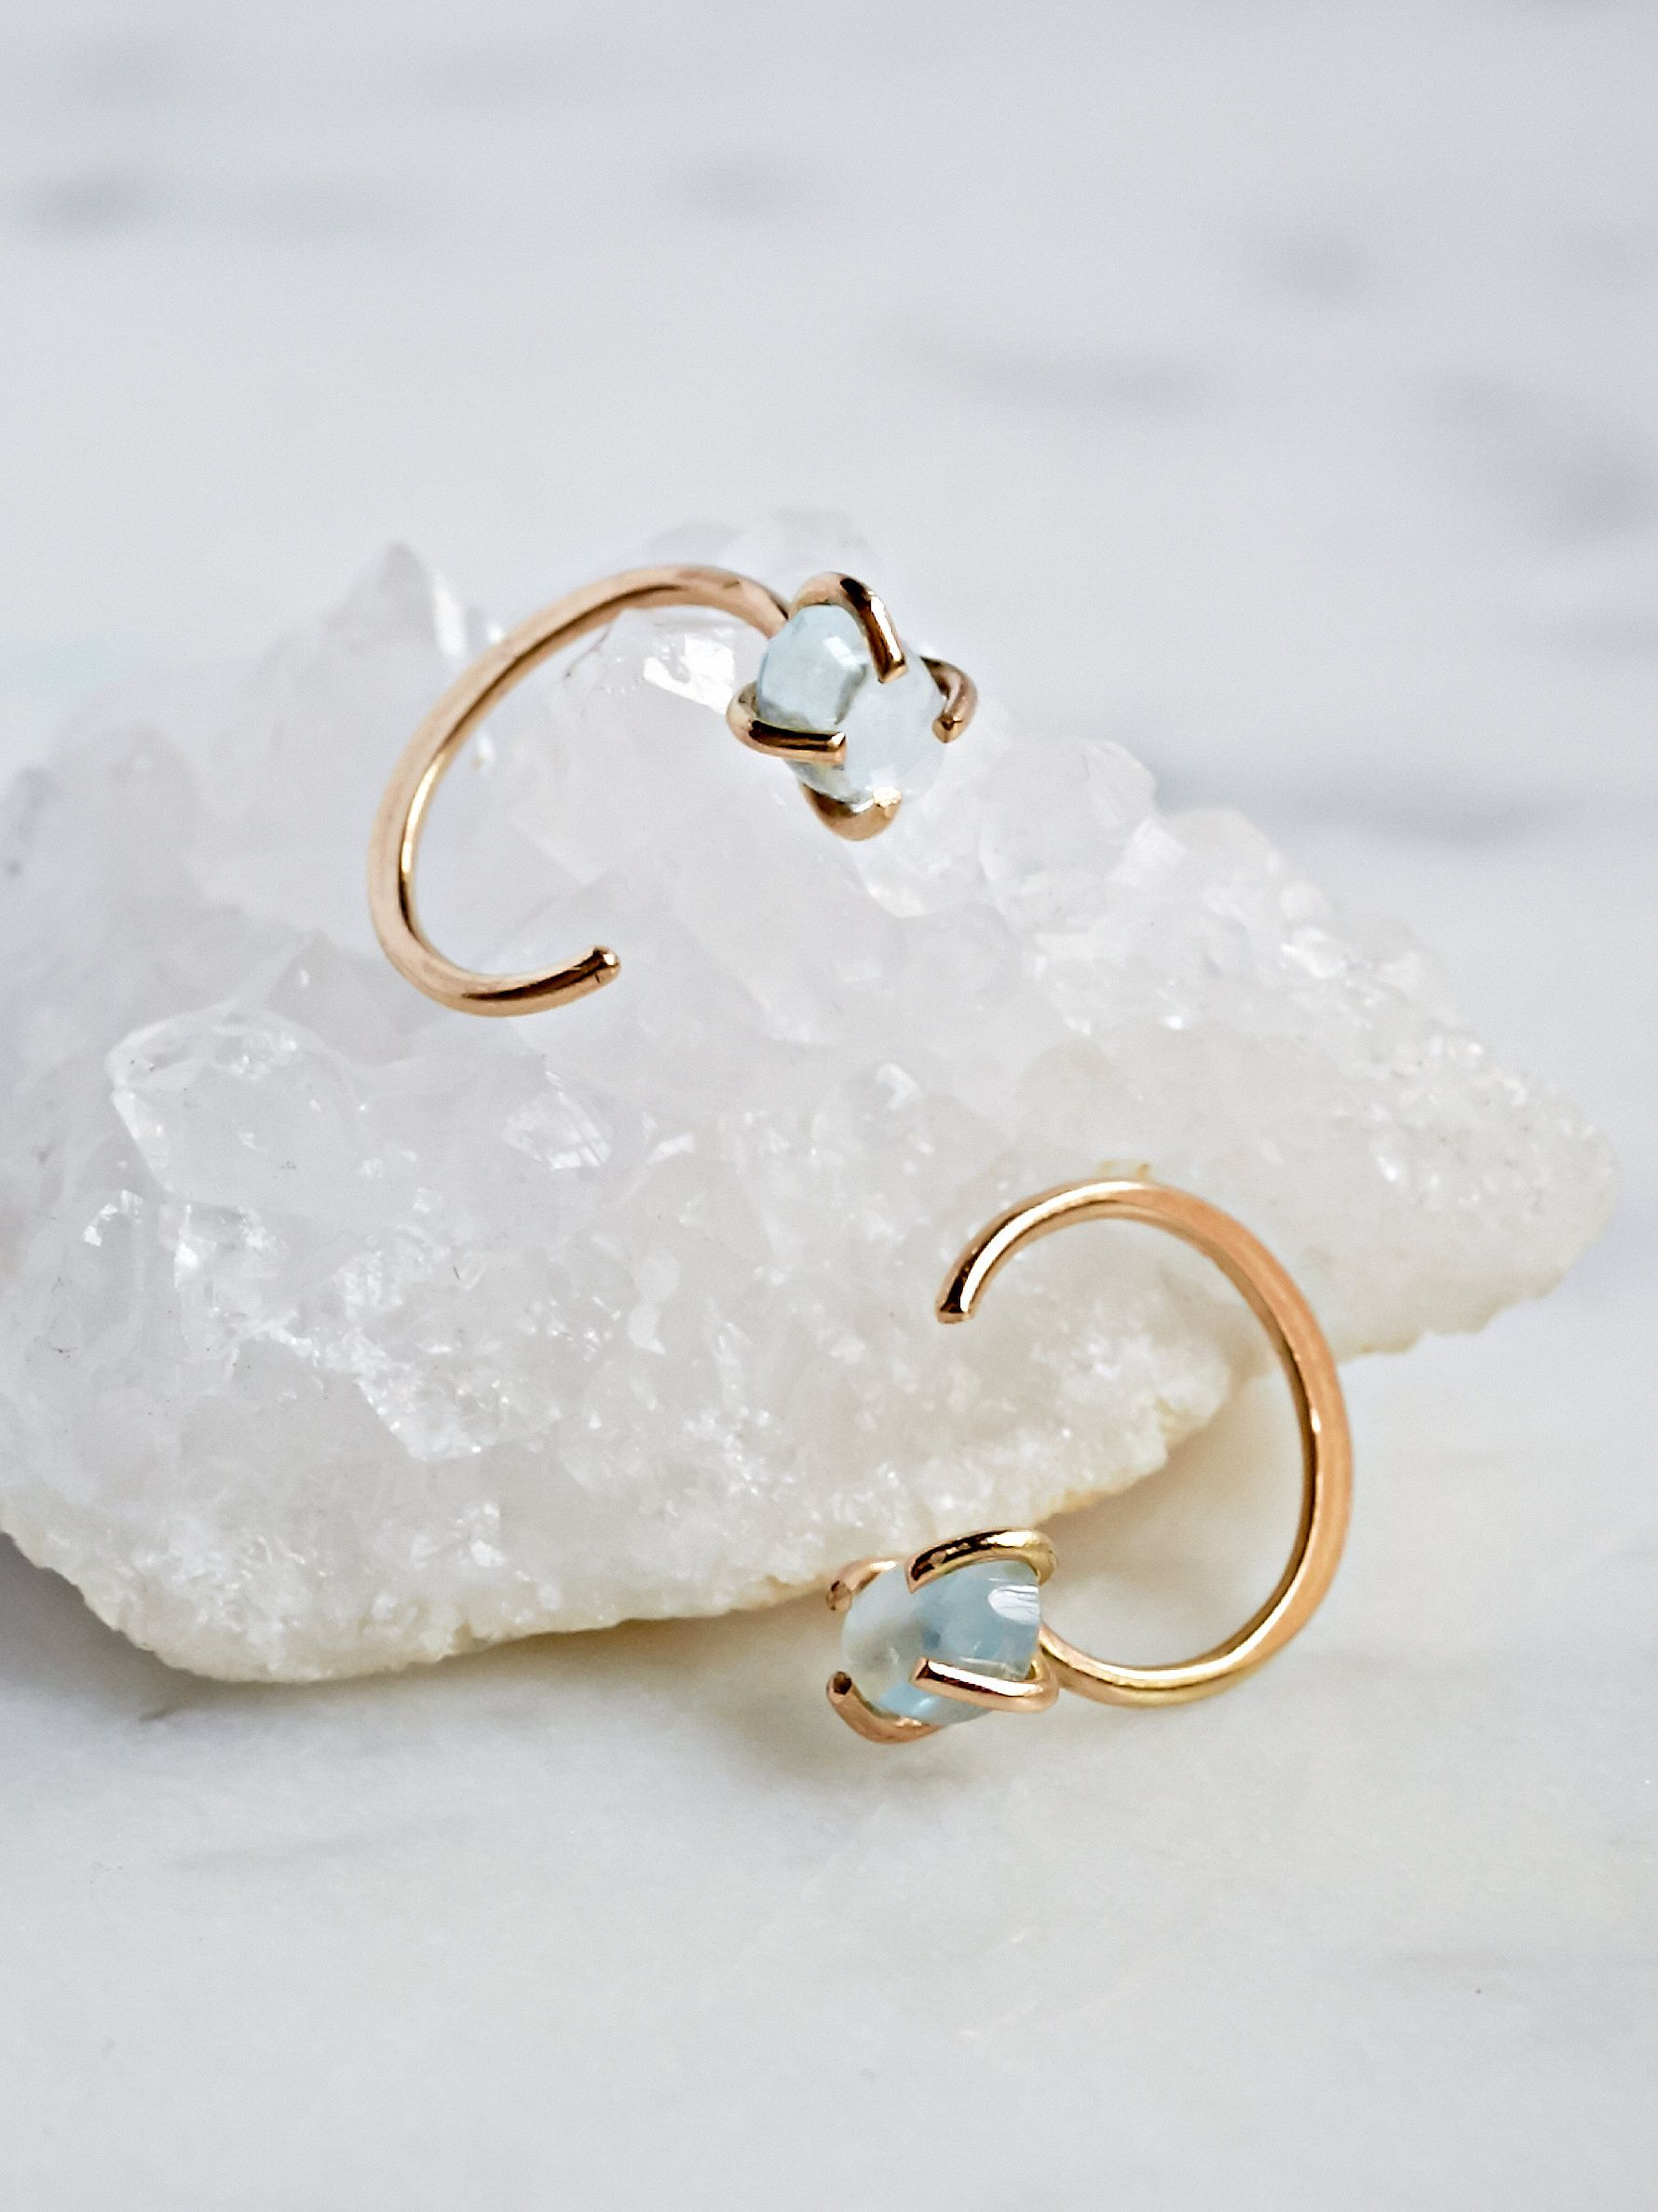 Raw Aqua Ear Hugging Hoop Beautifully Dainty 14k Yellow Gold Hoops Made In